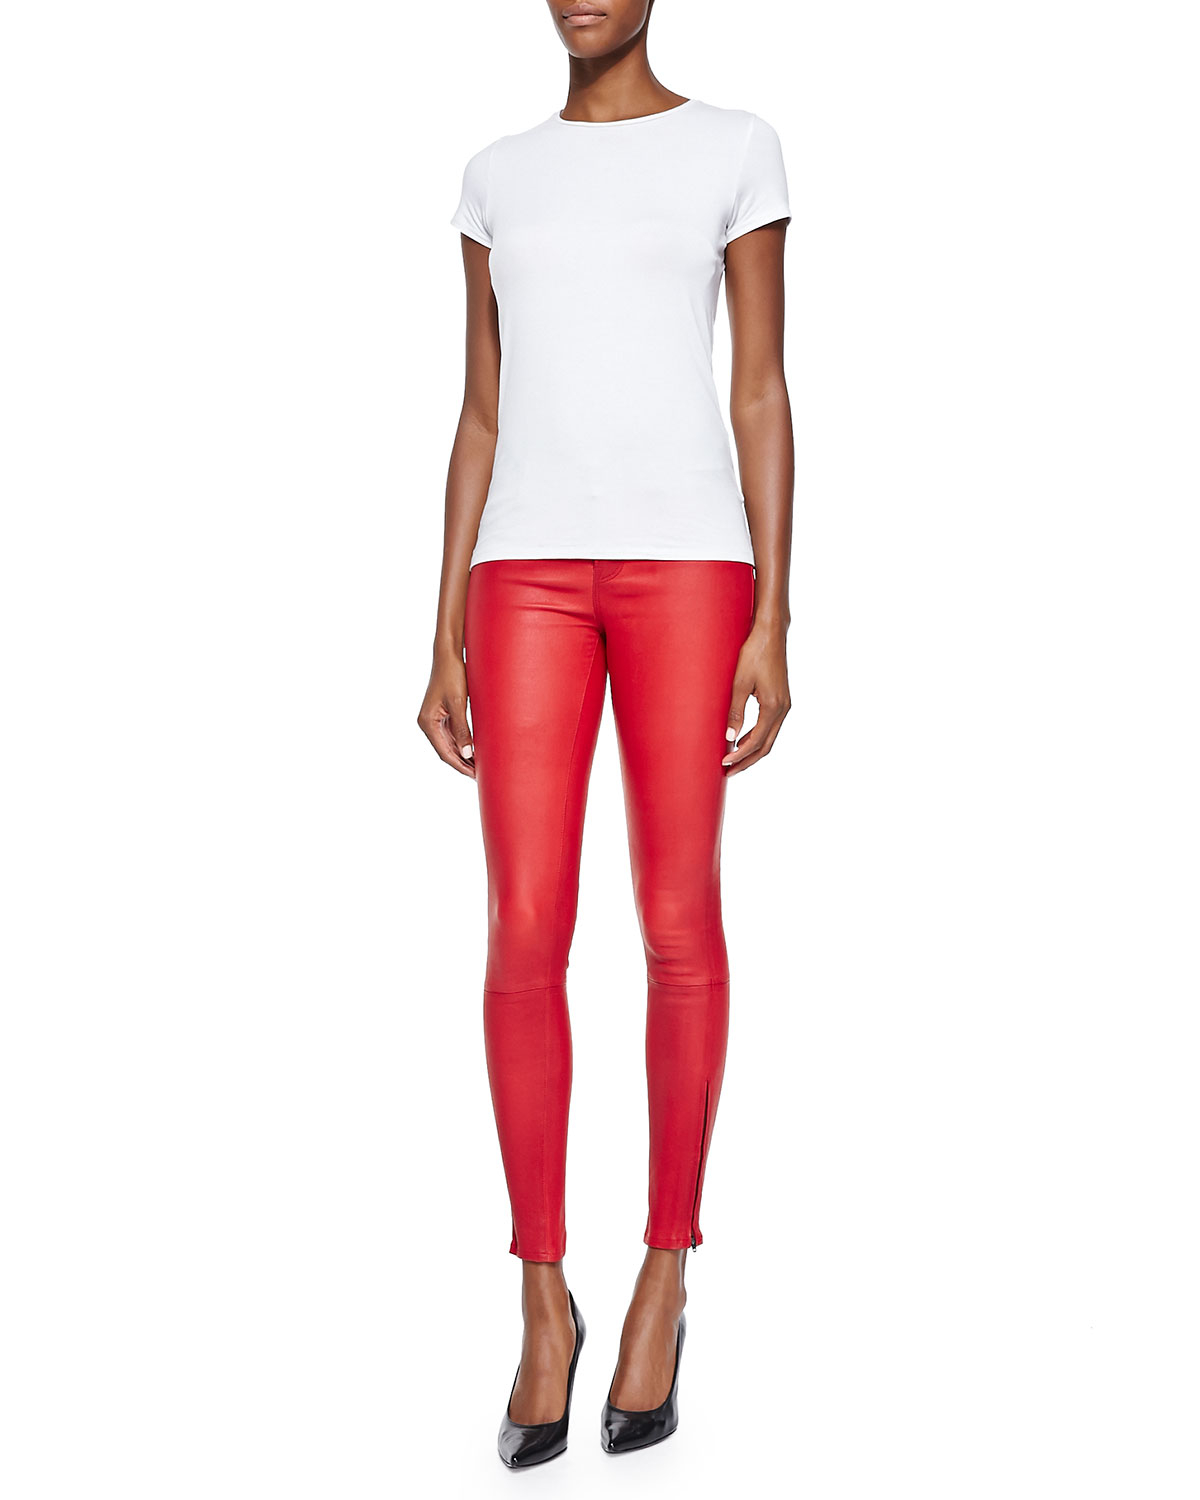 Collection Red Skinny Pants Pictures - The Fashions Of Paradise. Collection Red  Skinny Pants Pictures The Fashions Of Paradise - Collection Red Skinny Jeans For Men Pictures - Watch Out, There's